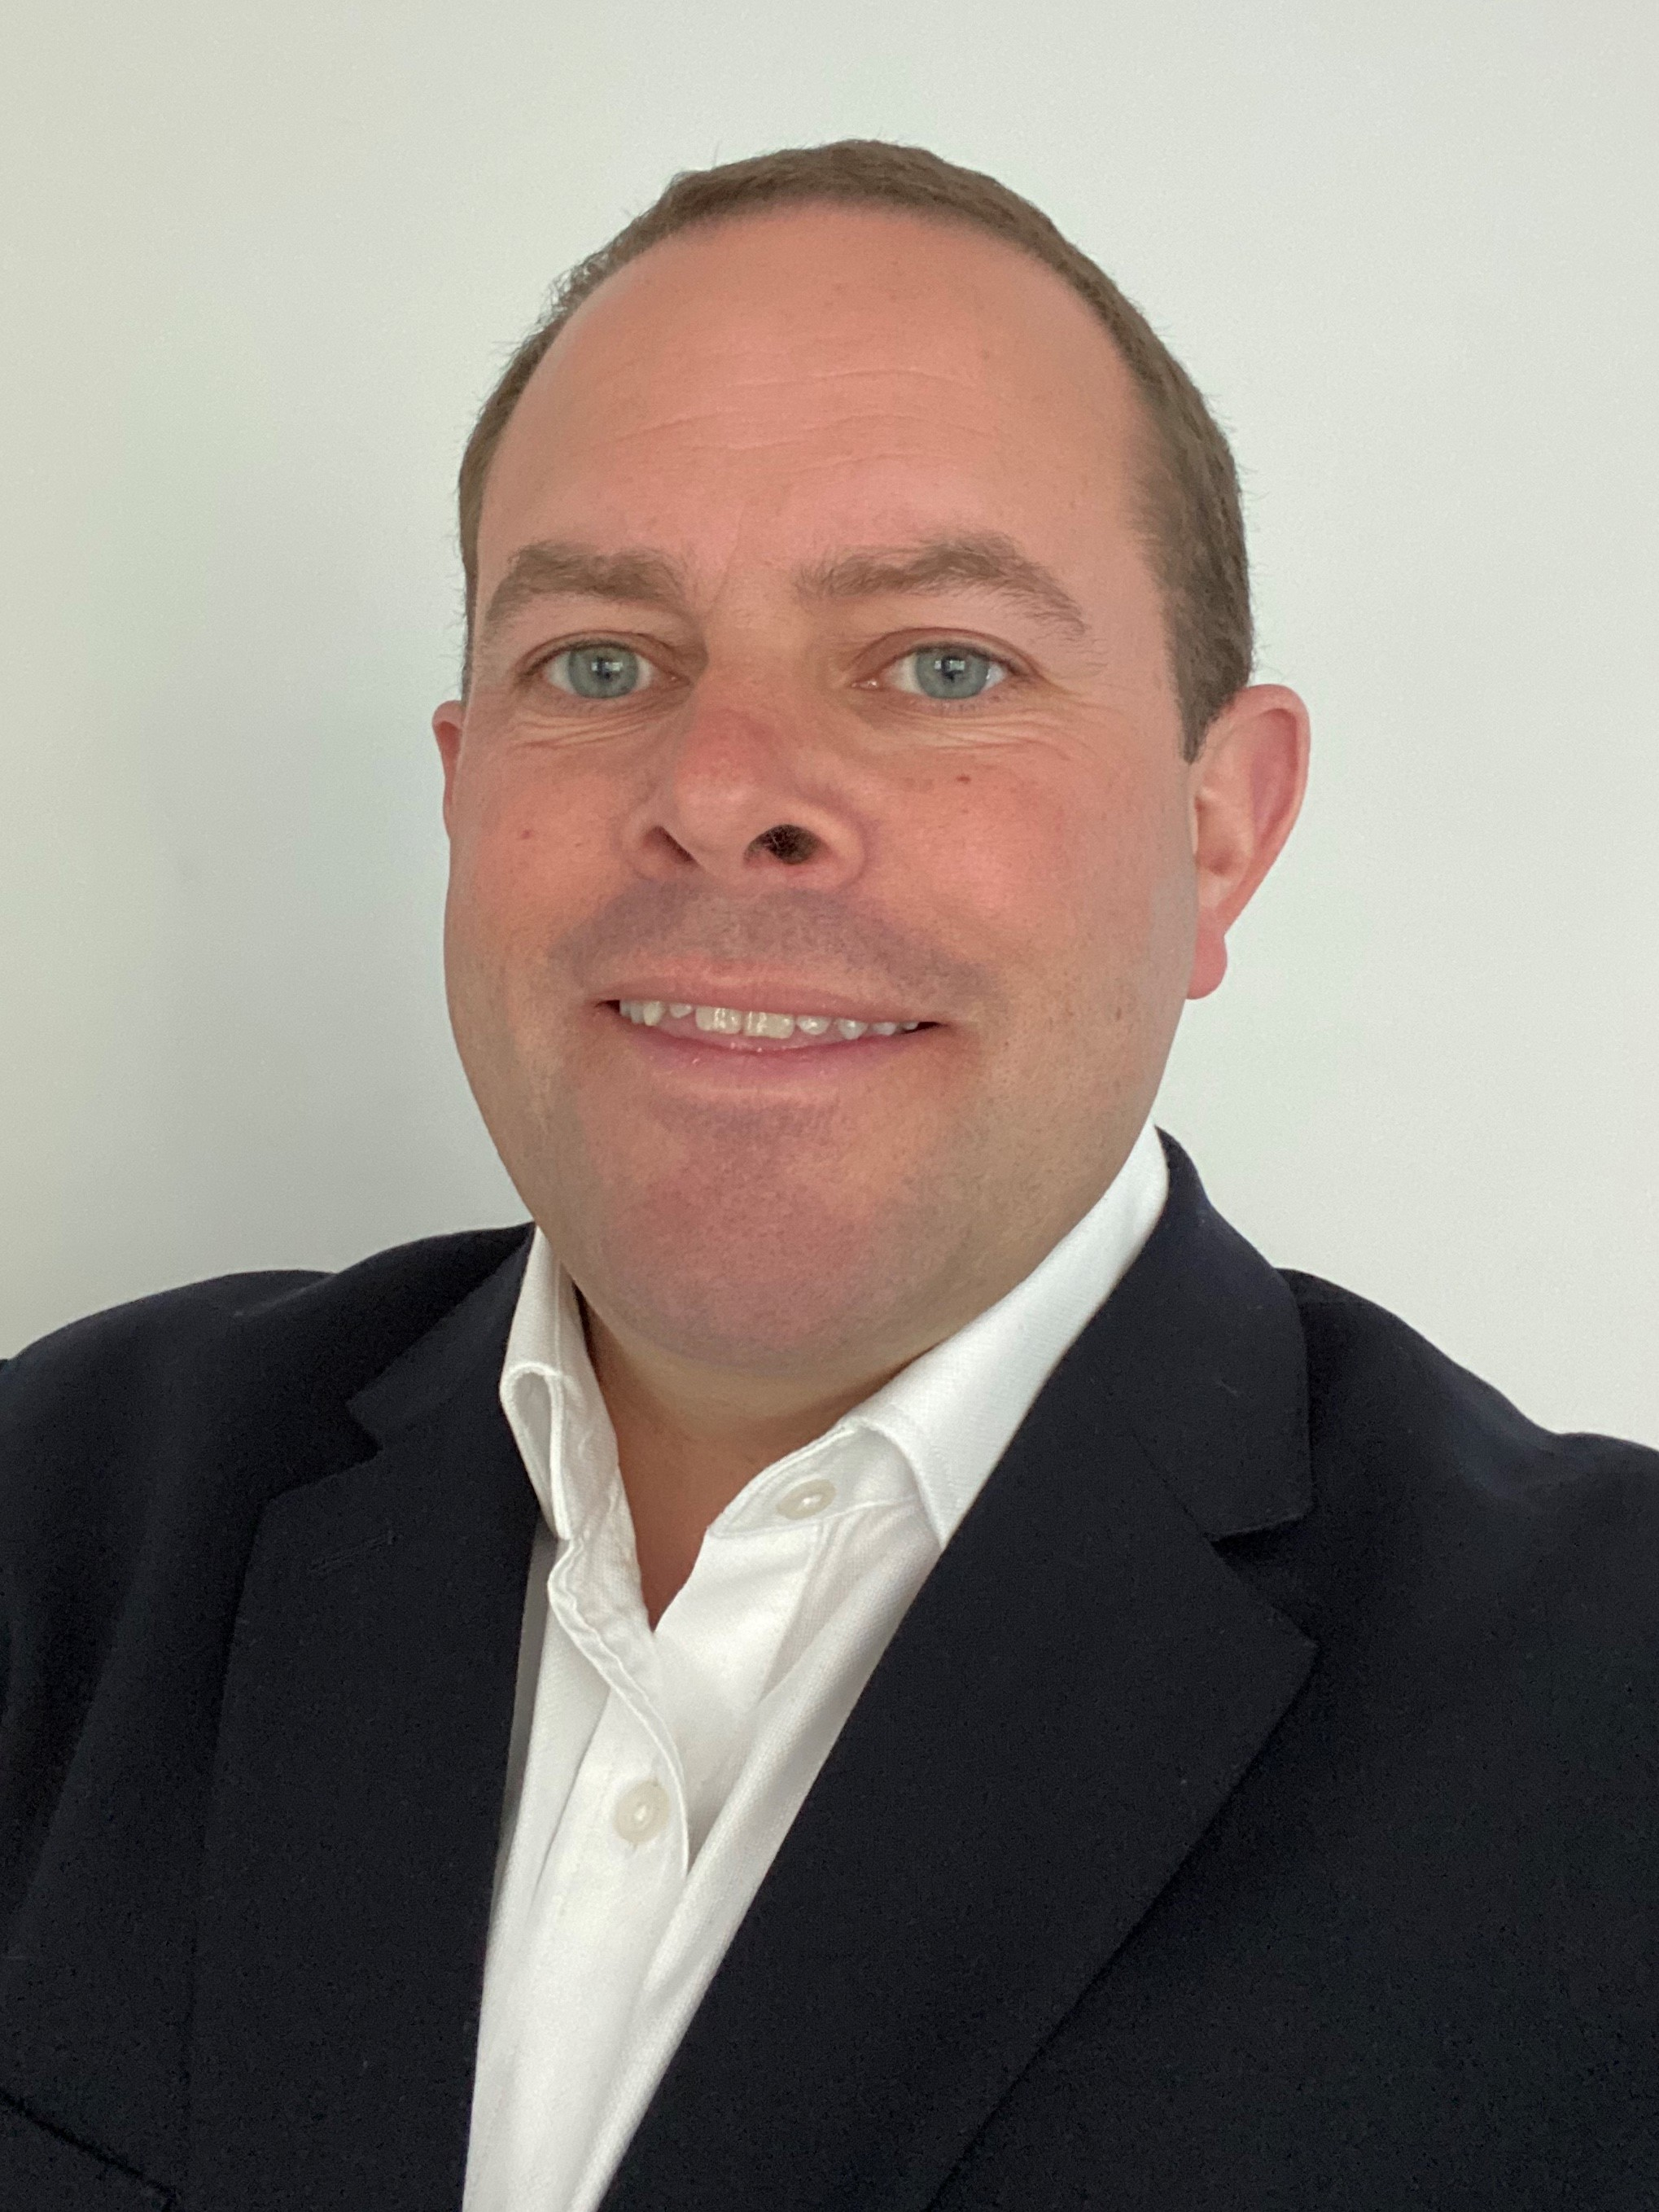 mthree appoints head of client services covering global operations